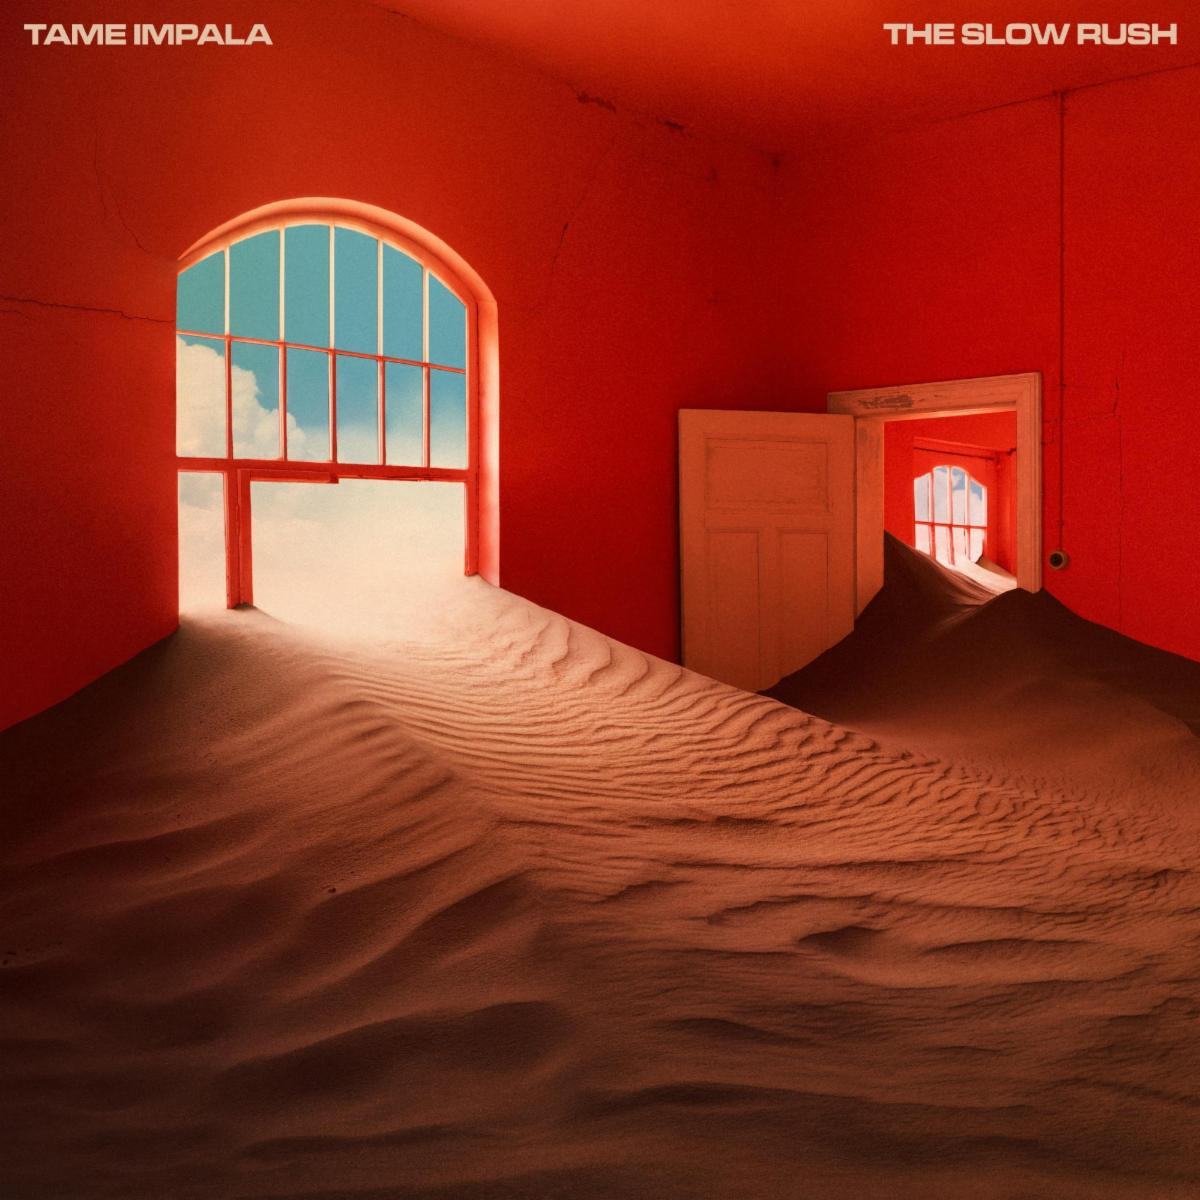 ALBUM REVIEW: Tame Impala - 'The Slow Rush'